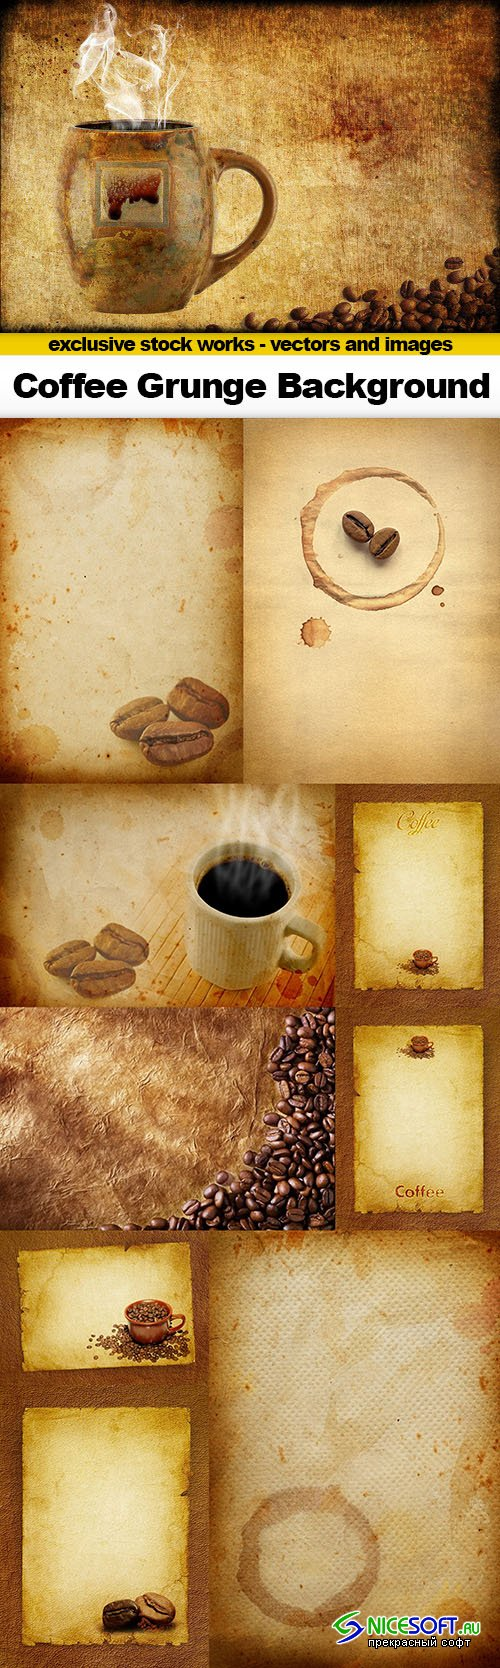 Coffee Grunge Background - 10x UHQ JPEG